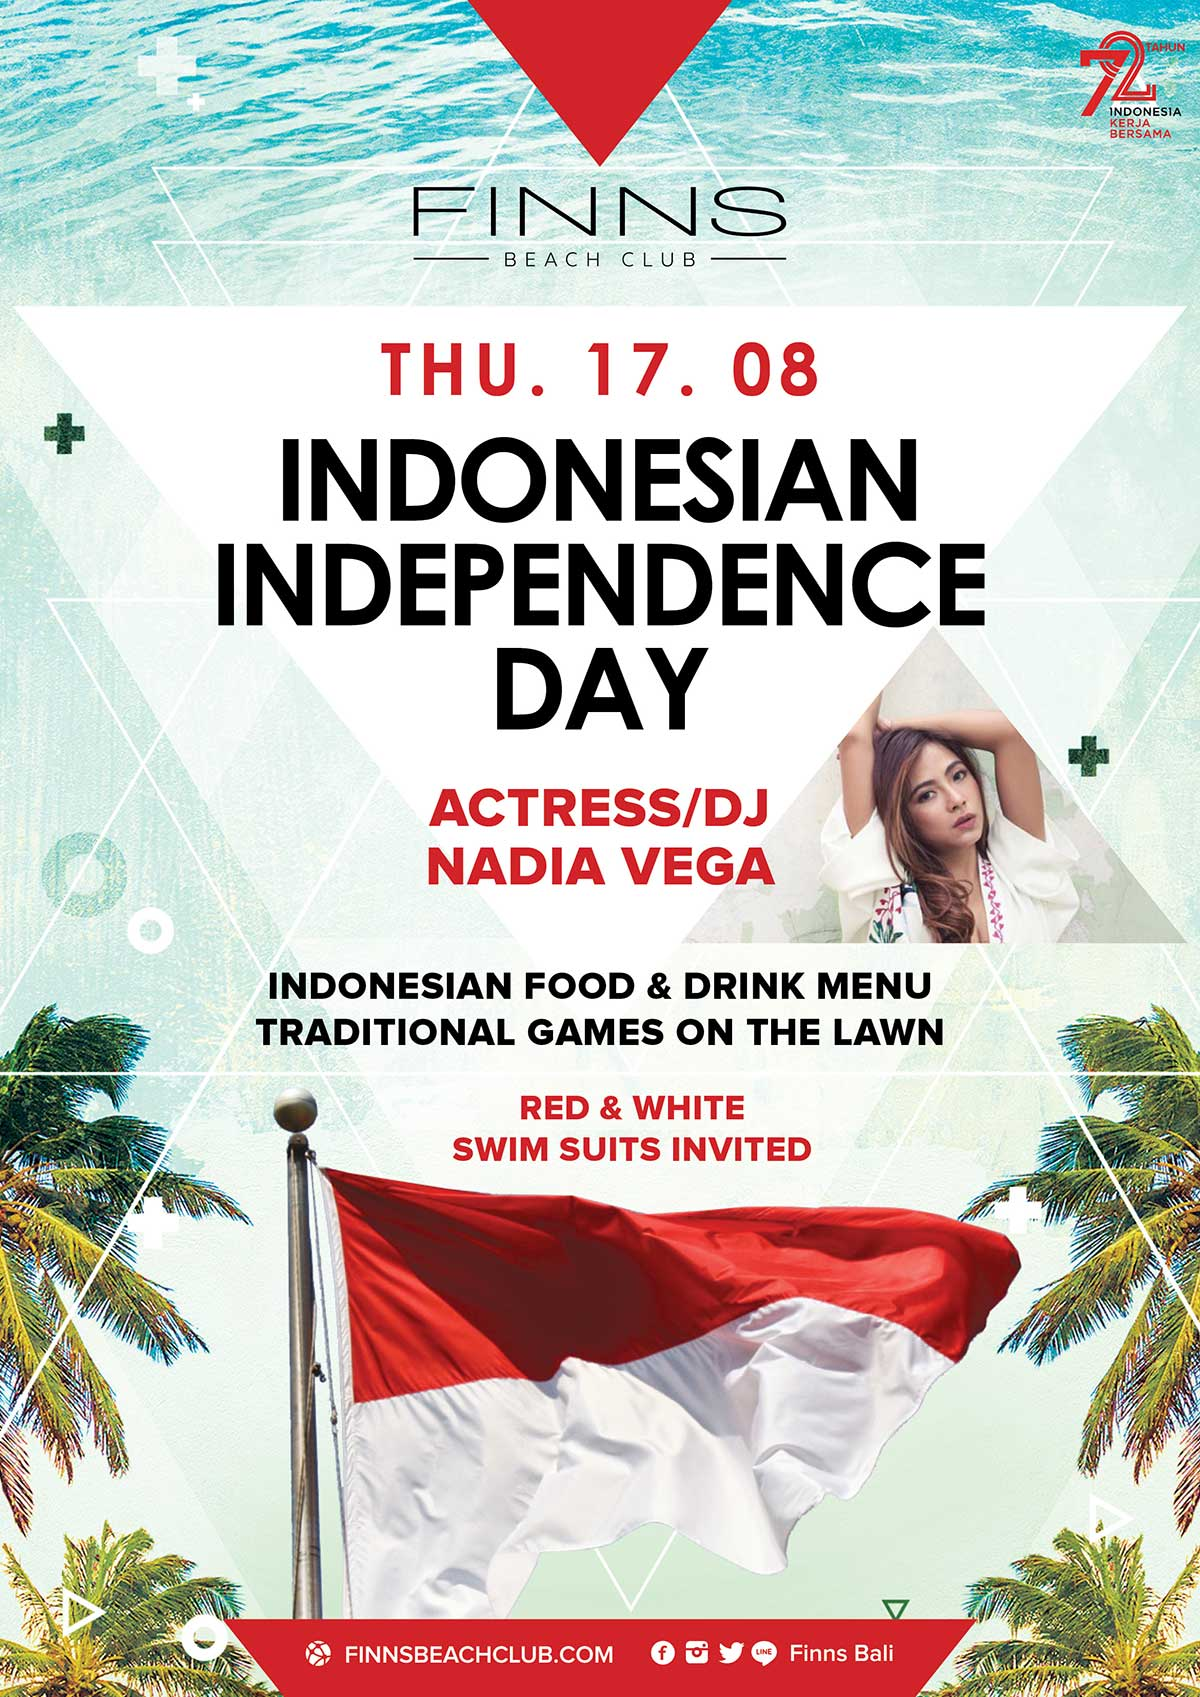 Independence Day at Finns Beach Club - Bali